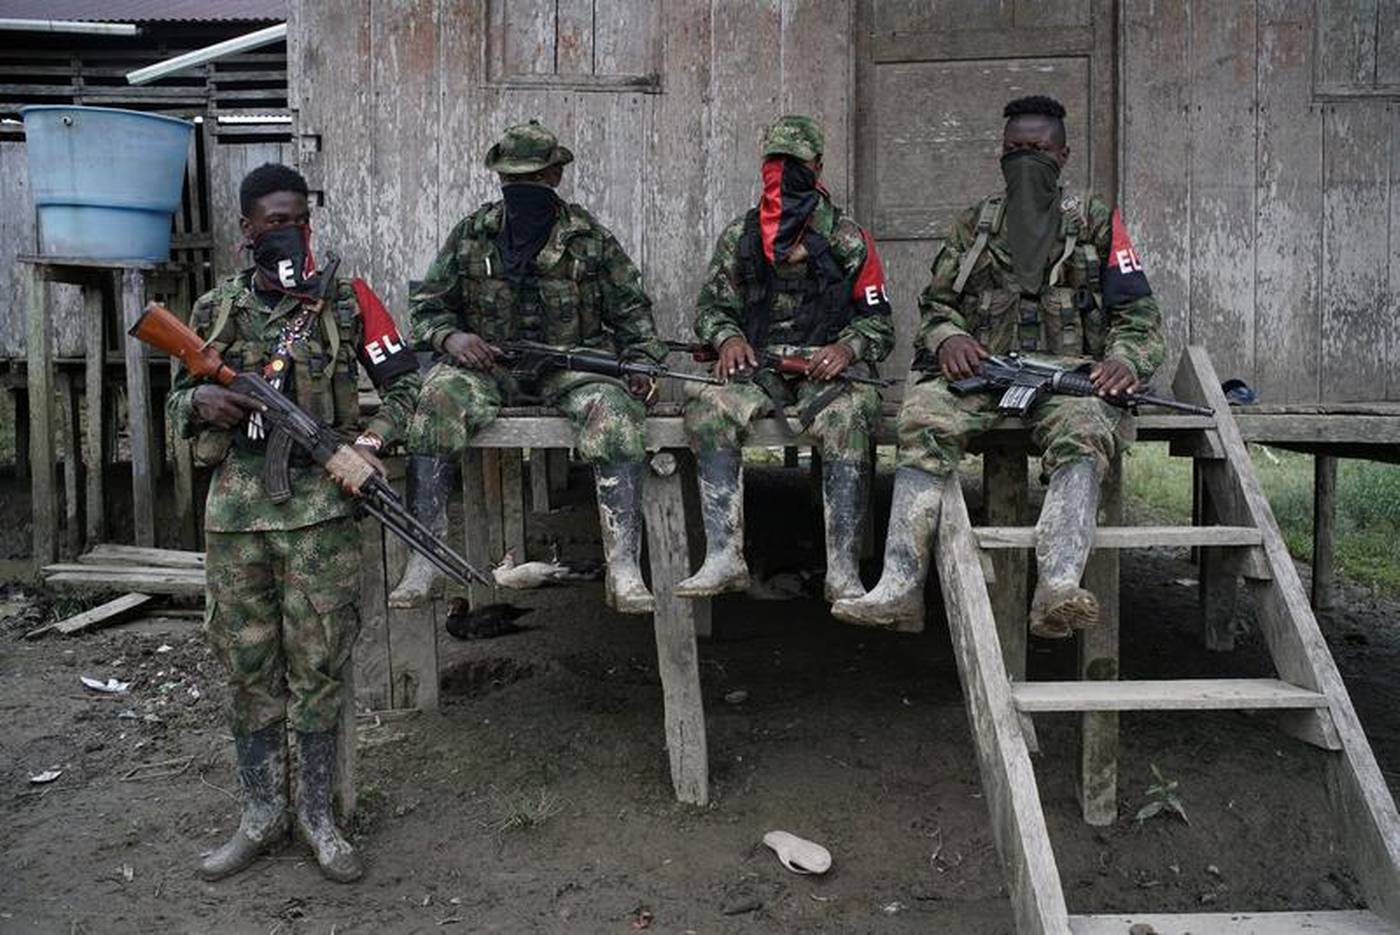 Colombia's ELN rebels call ceasefire for festive period